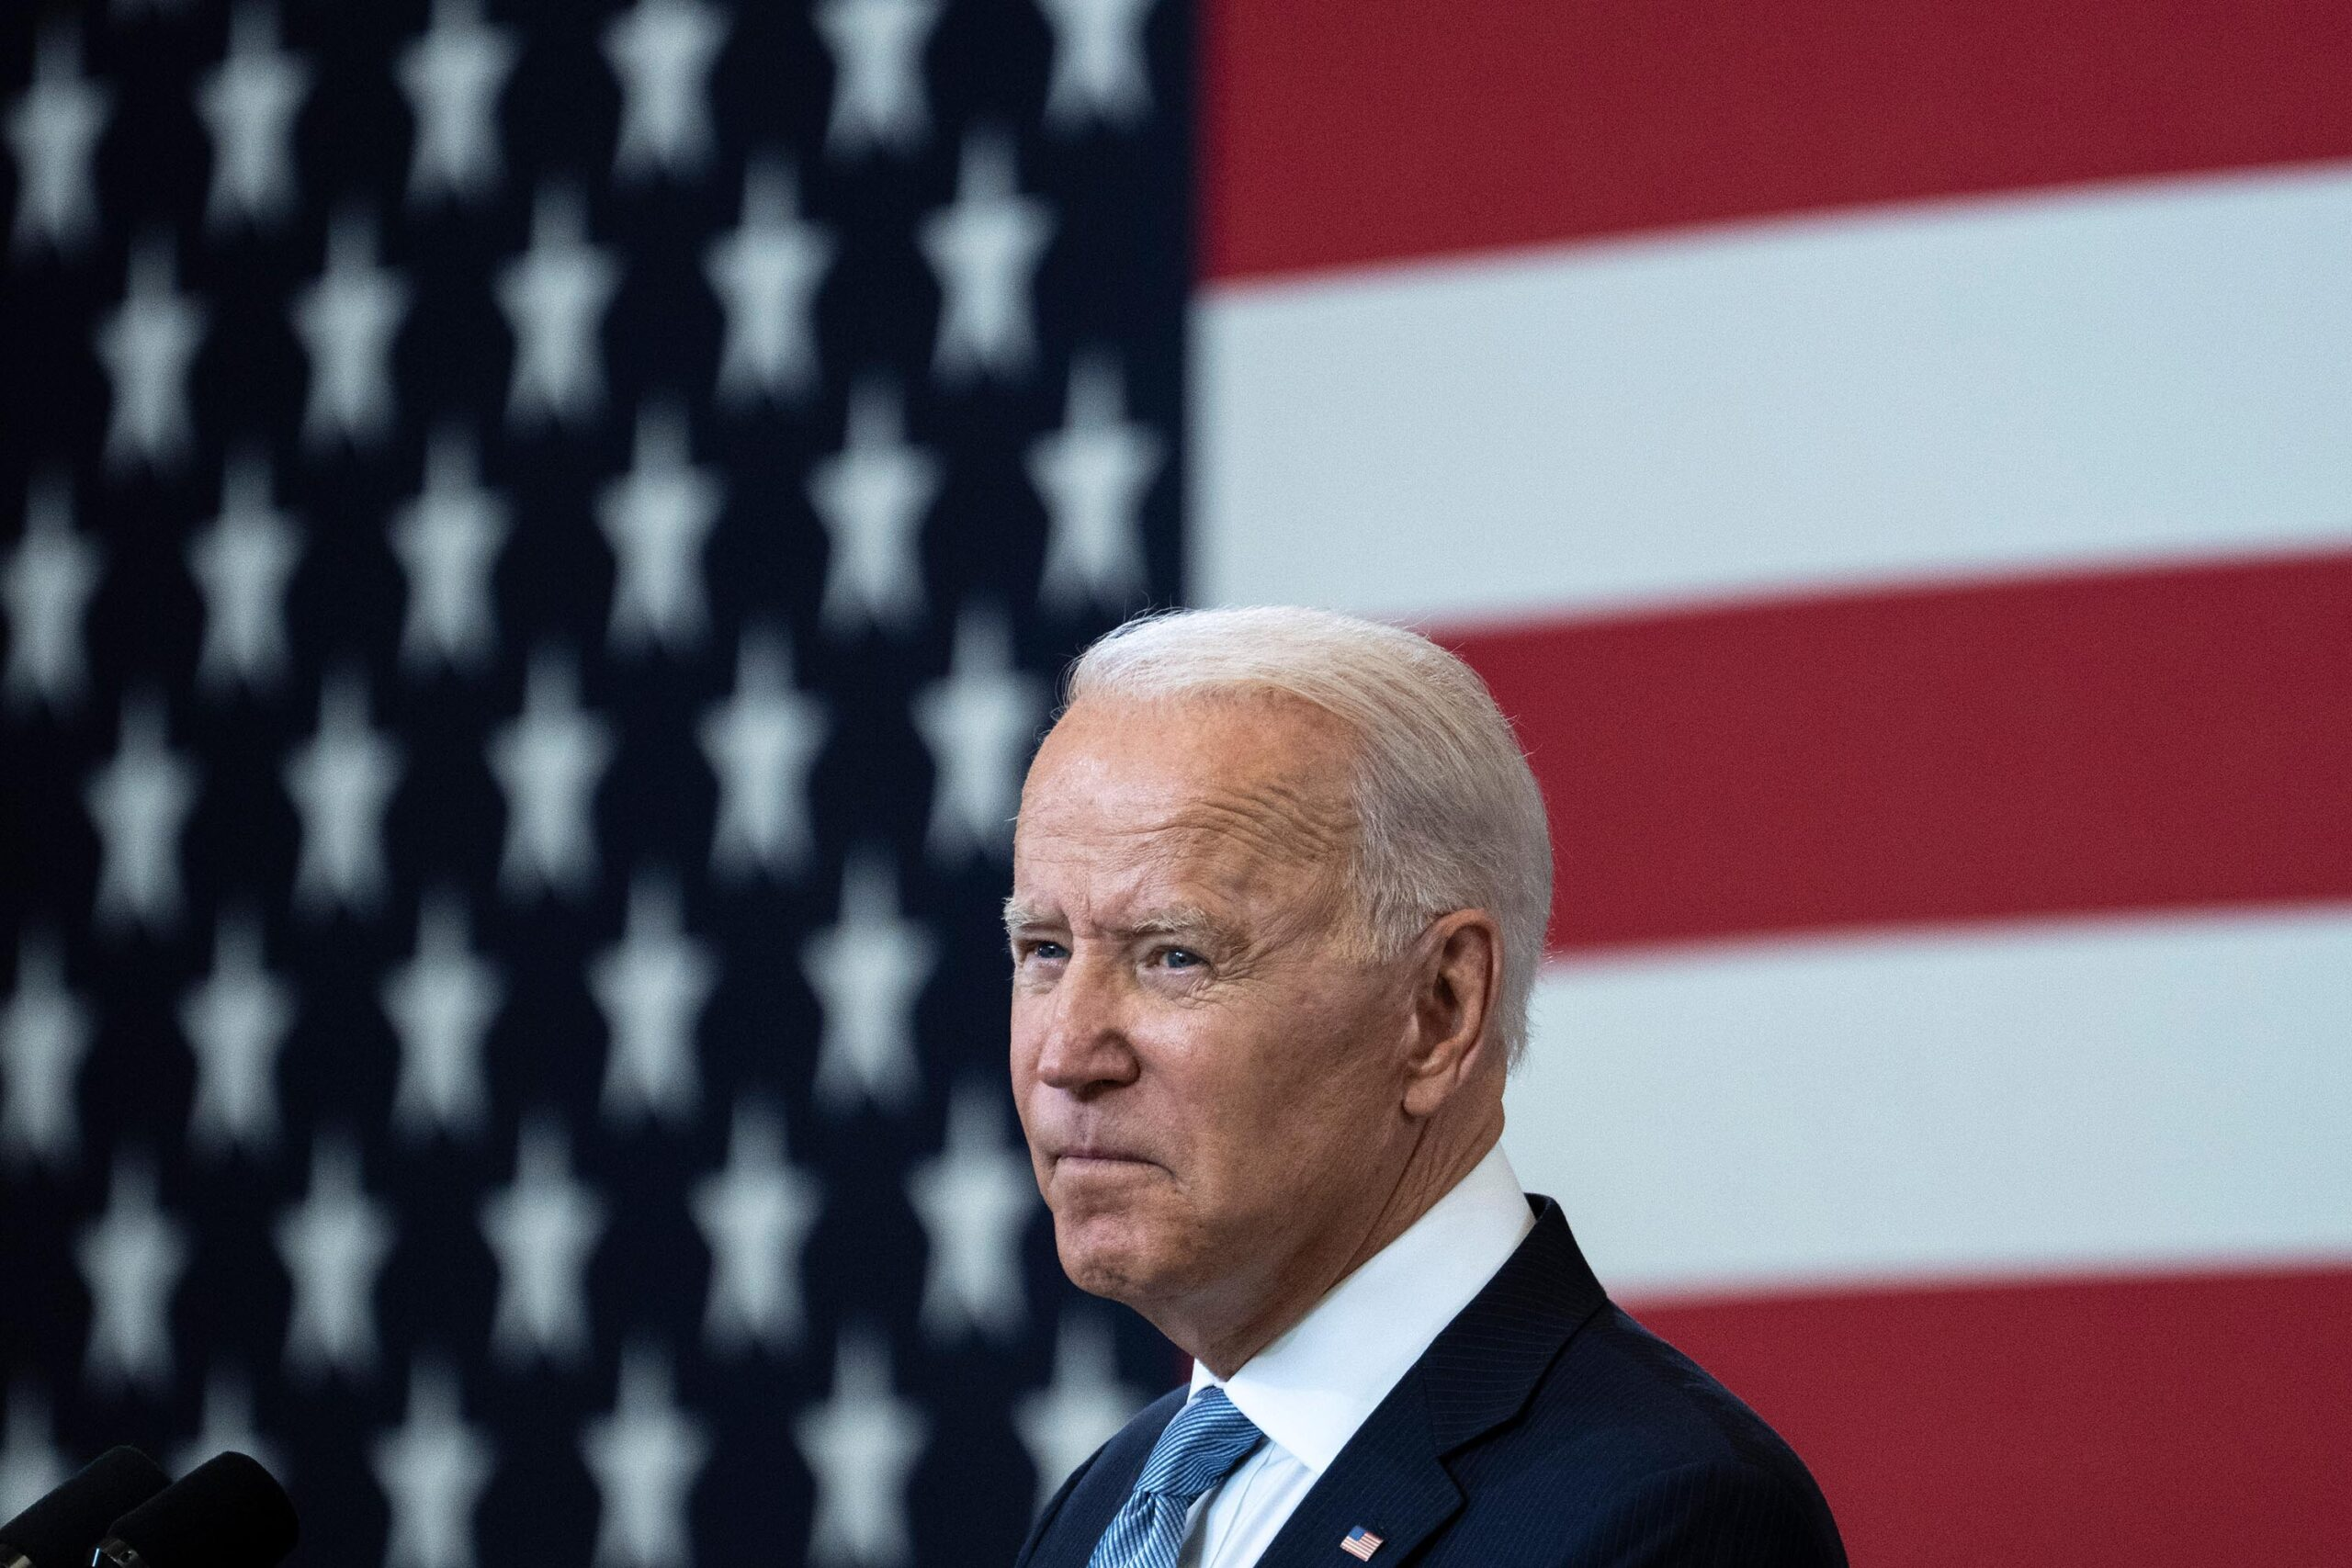 <i>Drew Angerer/Getty Images</i><br/>President Joe Biden on July 29 is set to announce a number of new steps his administration will take to try to get more Americans vaccinated and slow the spread of coronavirus